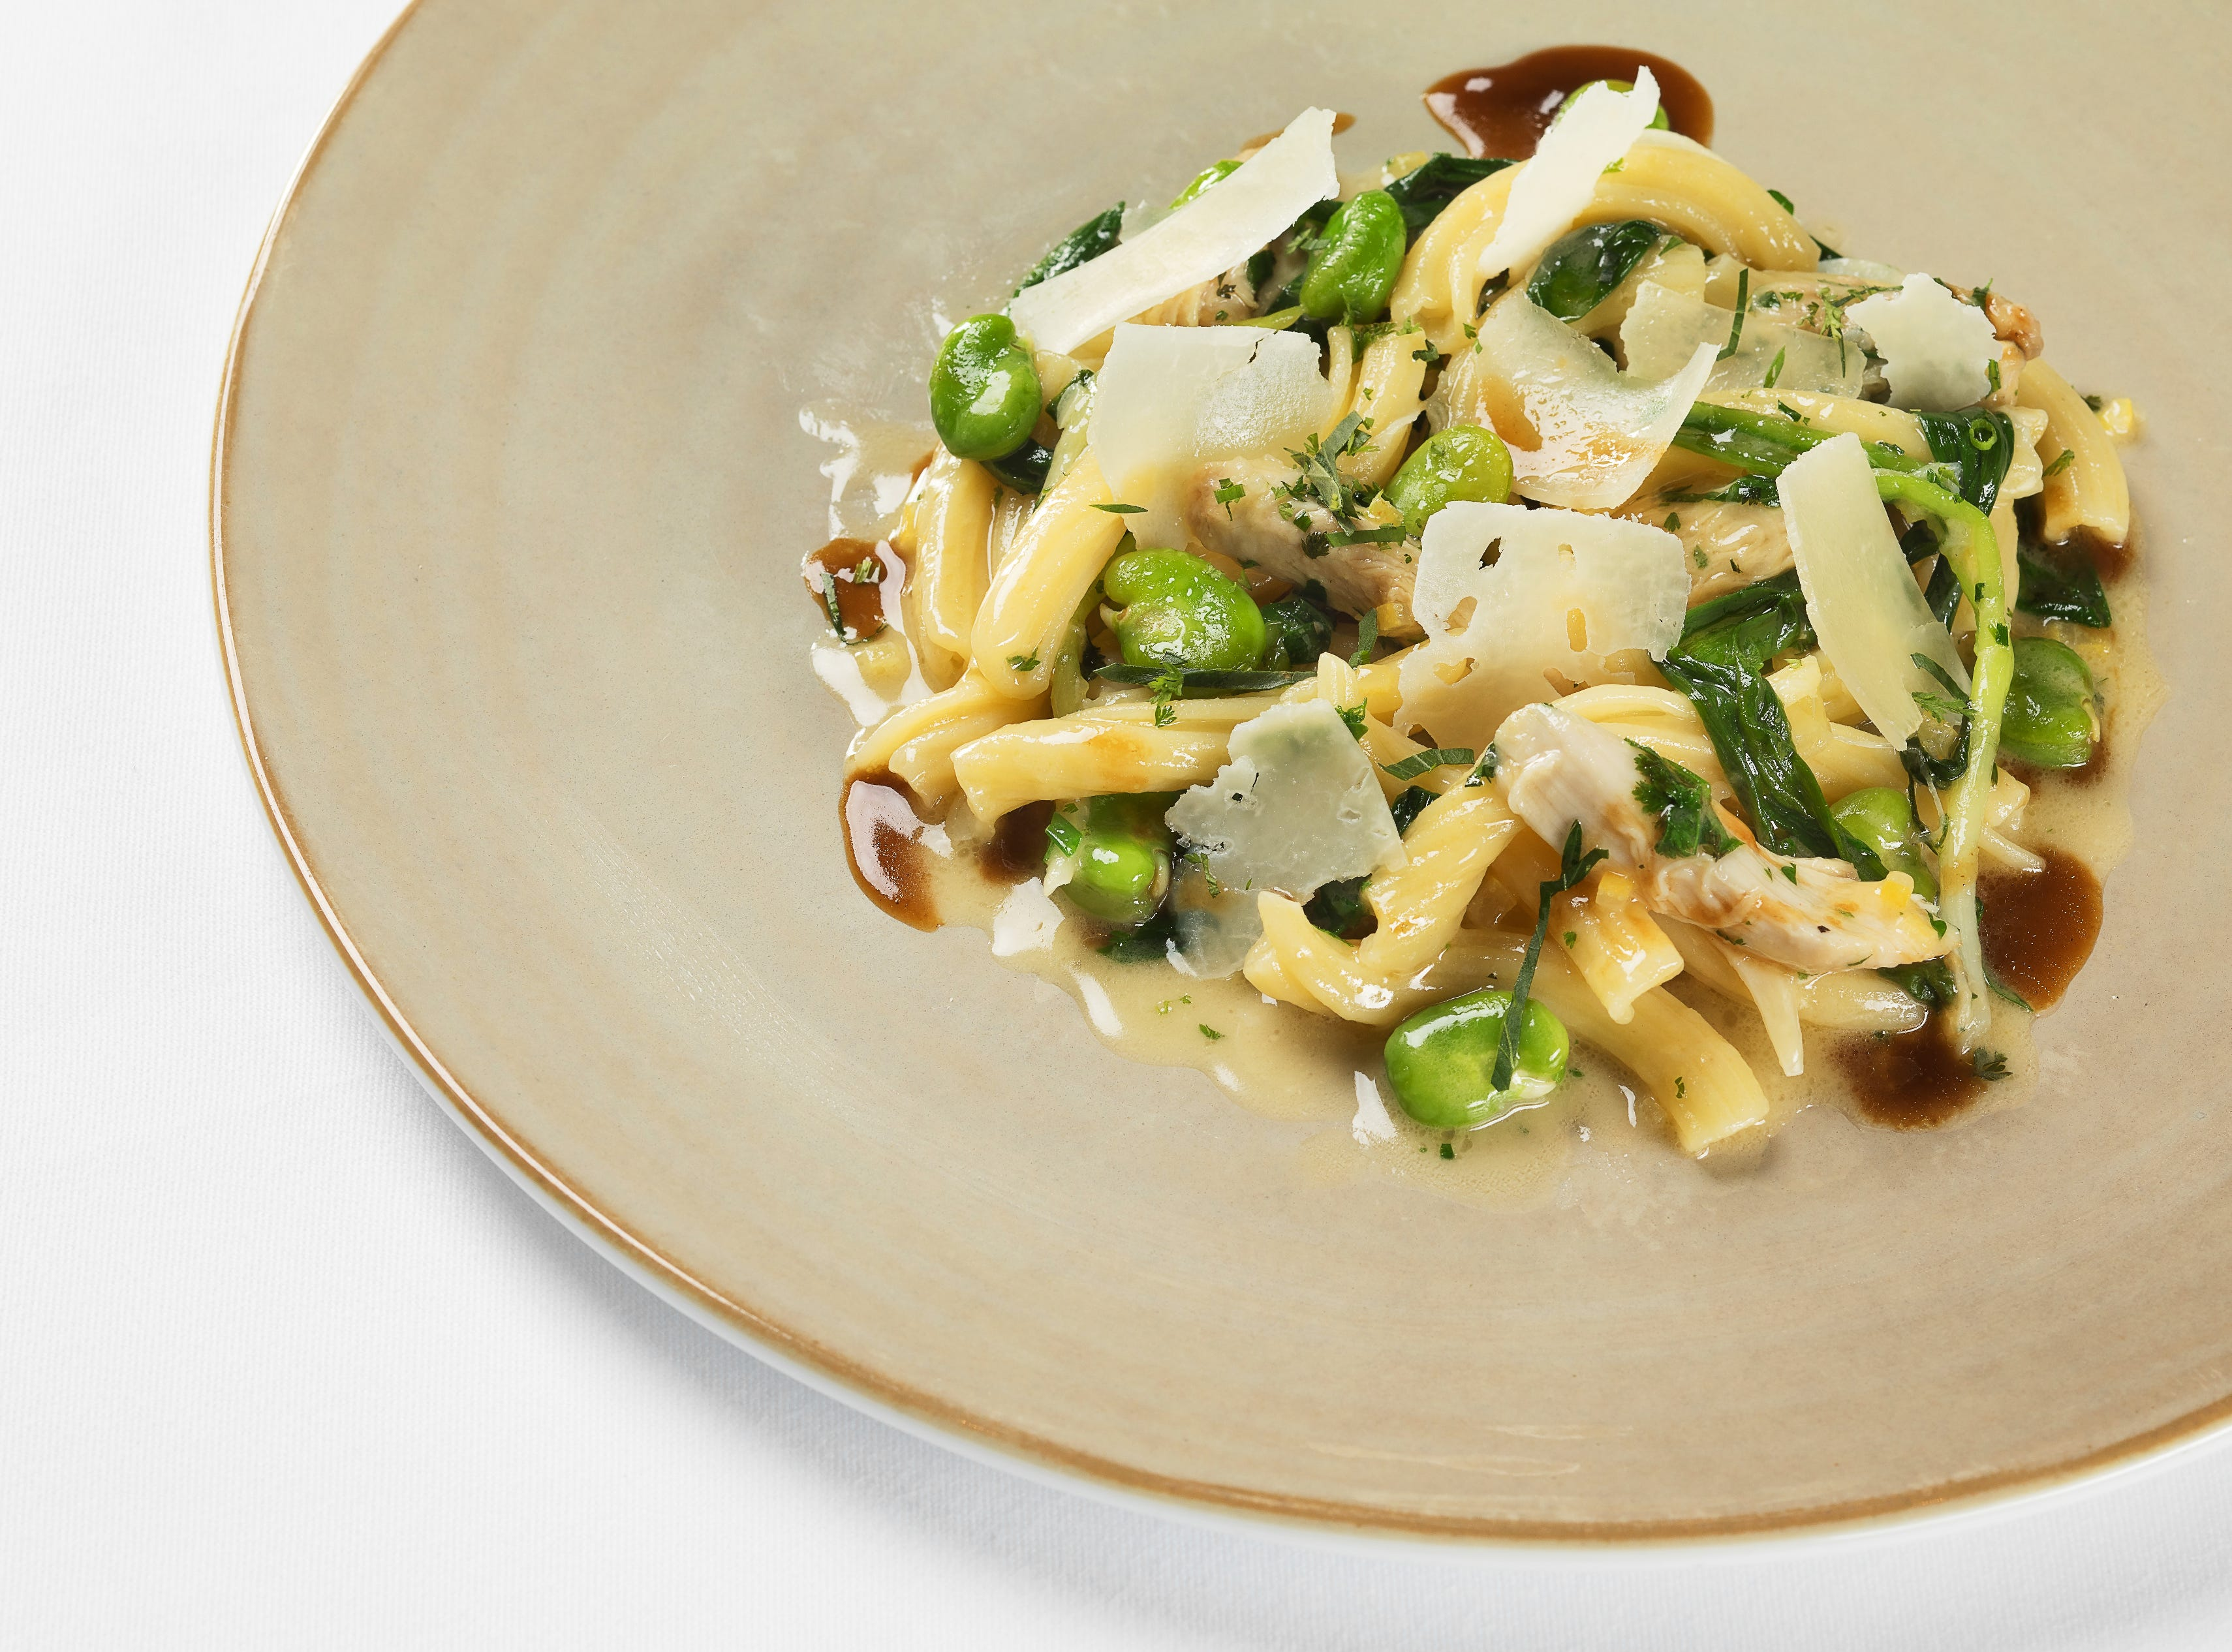 SPAGO in Bellagio Resort & Casino. Ah, spring! Rabbit garganelli with ramps and fava beans.